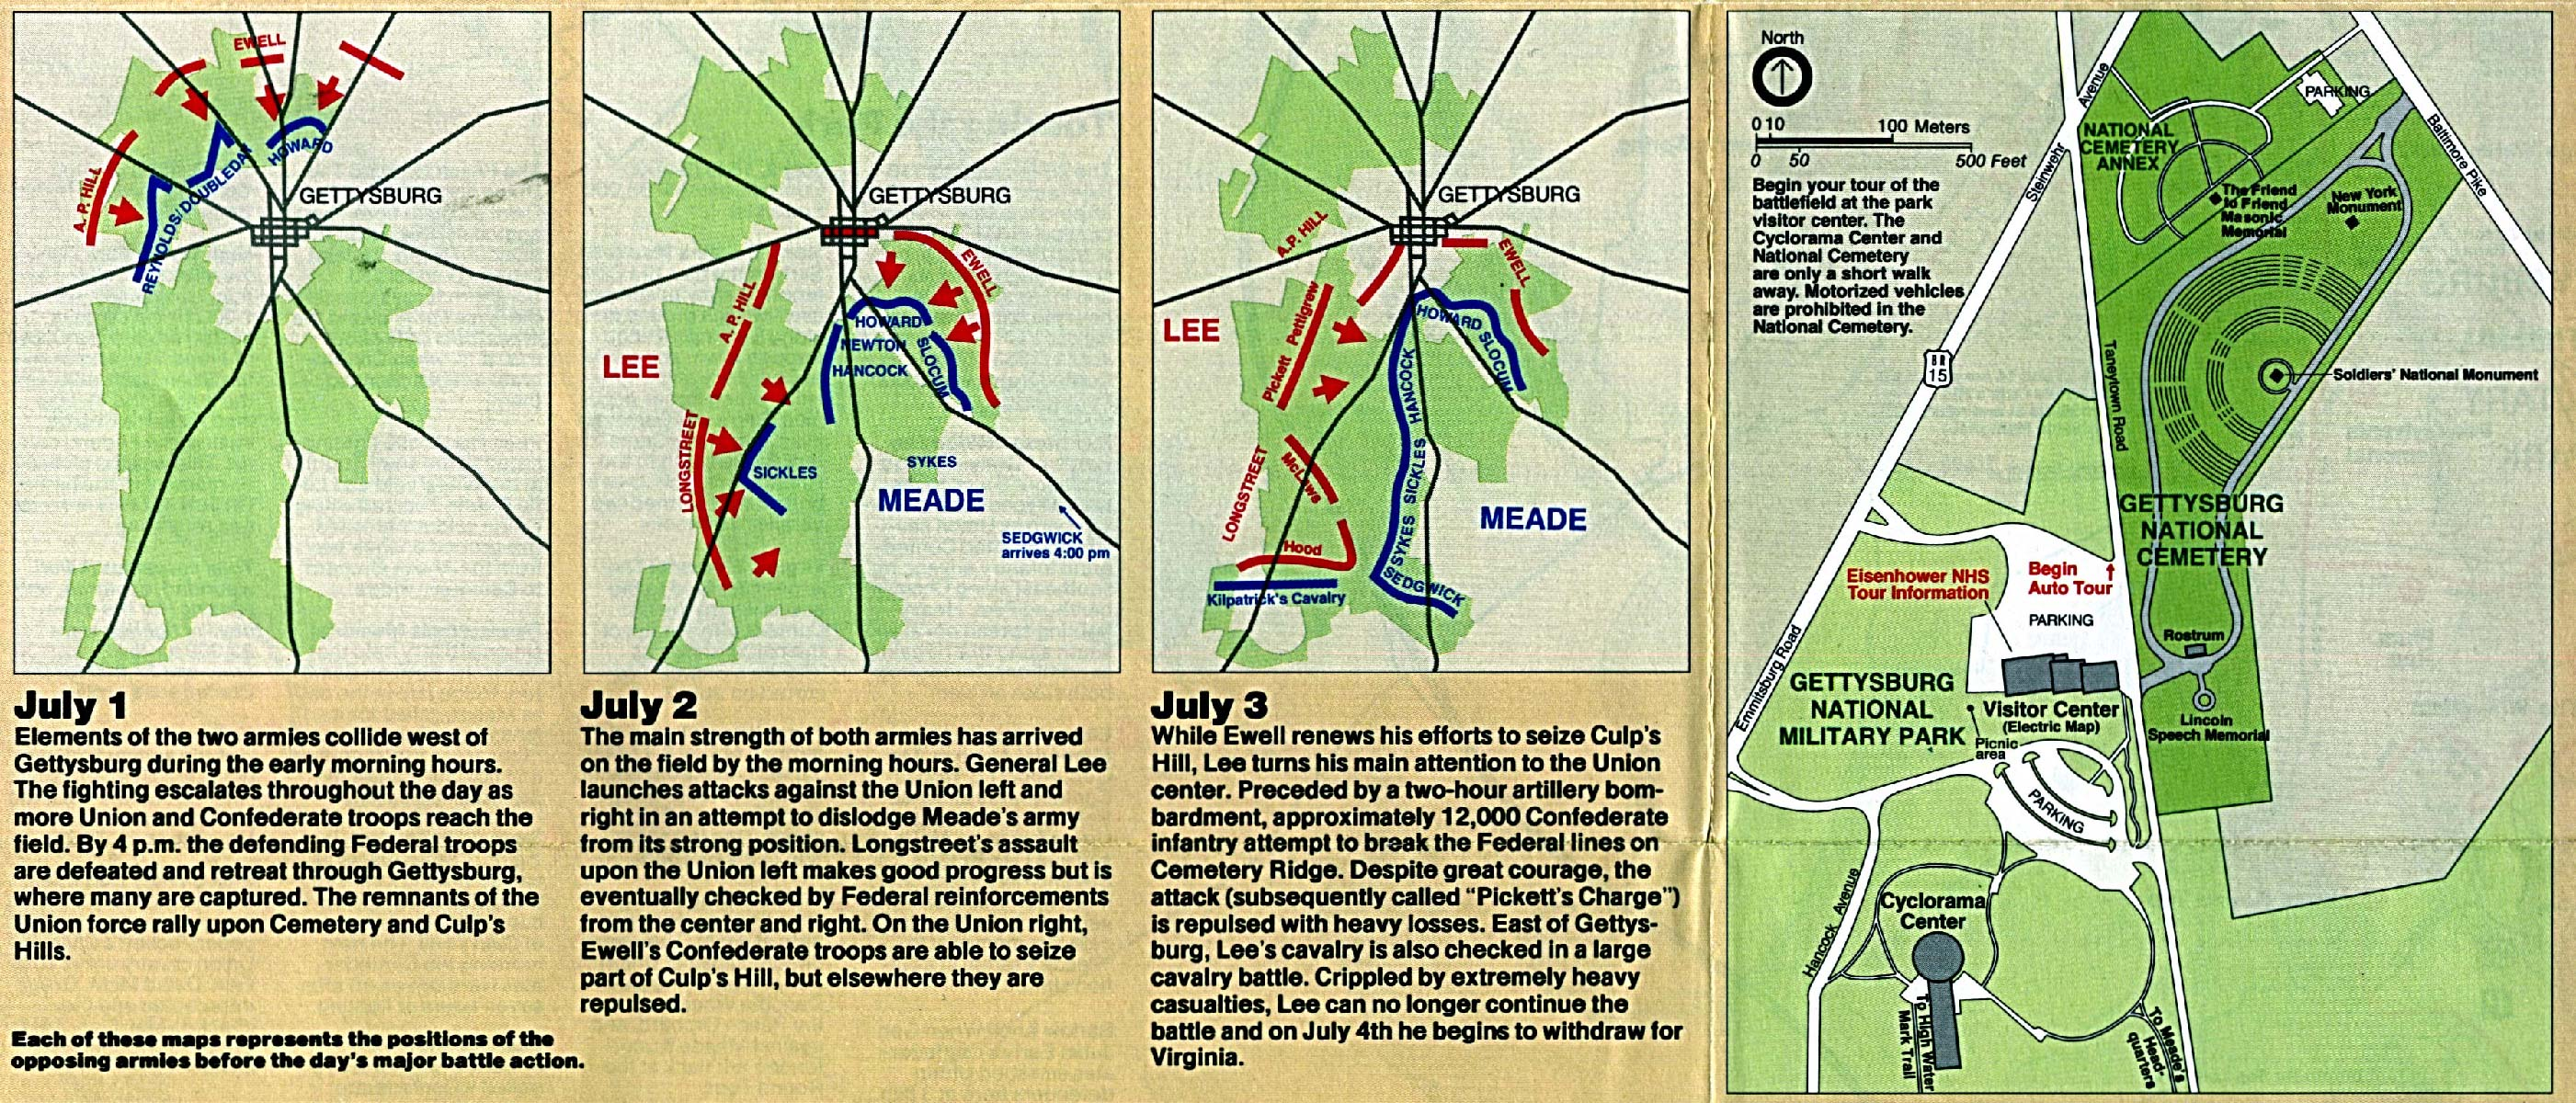 Maps of United States National Parks, Monuments and Historic Sites Gettysburg National Military Park [Pennsylvania] (Battle Maps with Park Map) 1995 (970K)